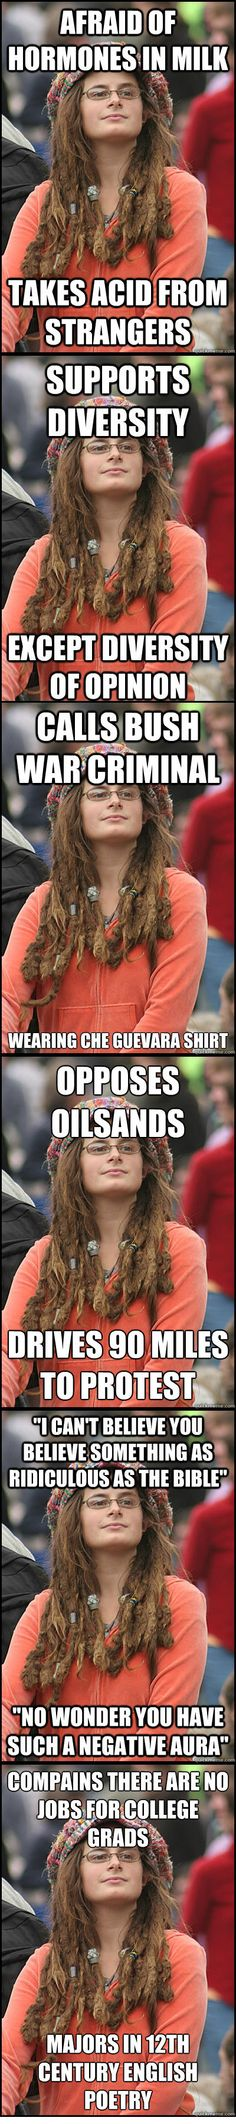 ohh hippies